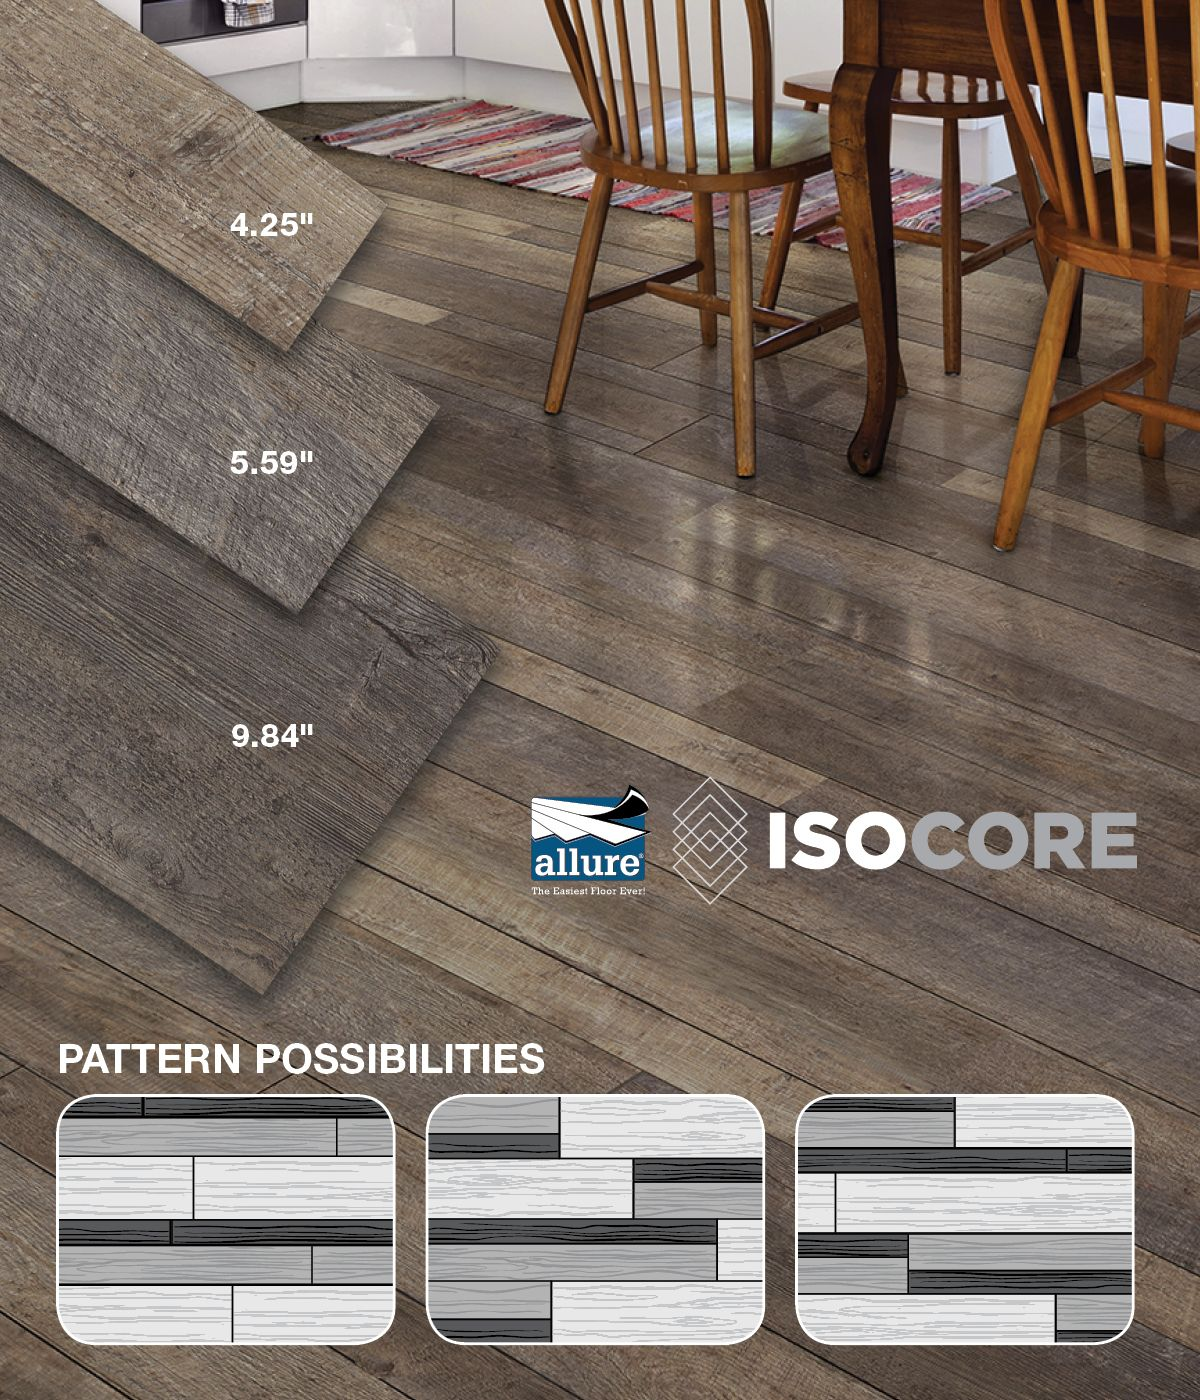 Who Installs Flooring For Home Depot: You Can Install Allure ISOCORE Multi-Width Vinyl Plank